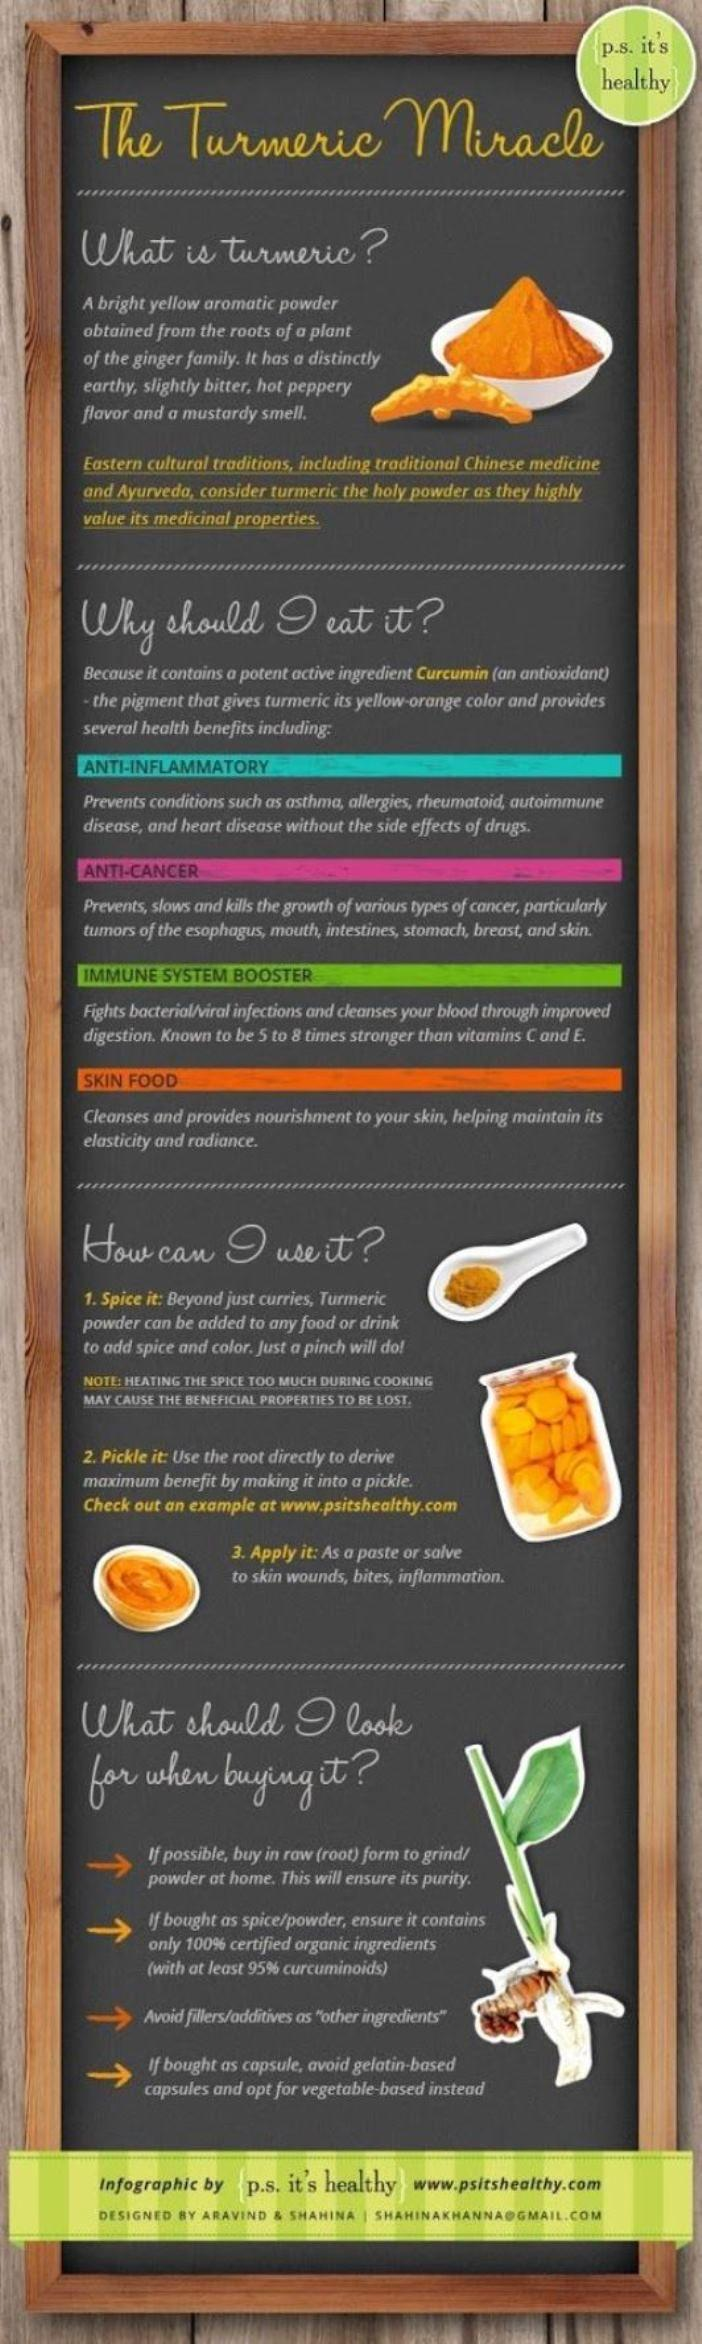 The Miraculous Benefits Of Turmeric